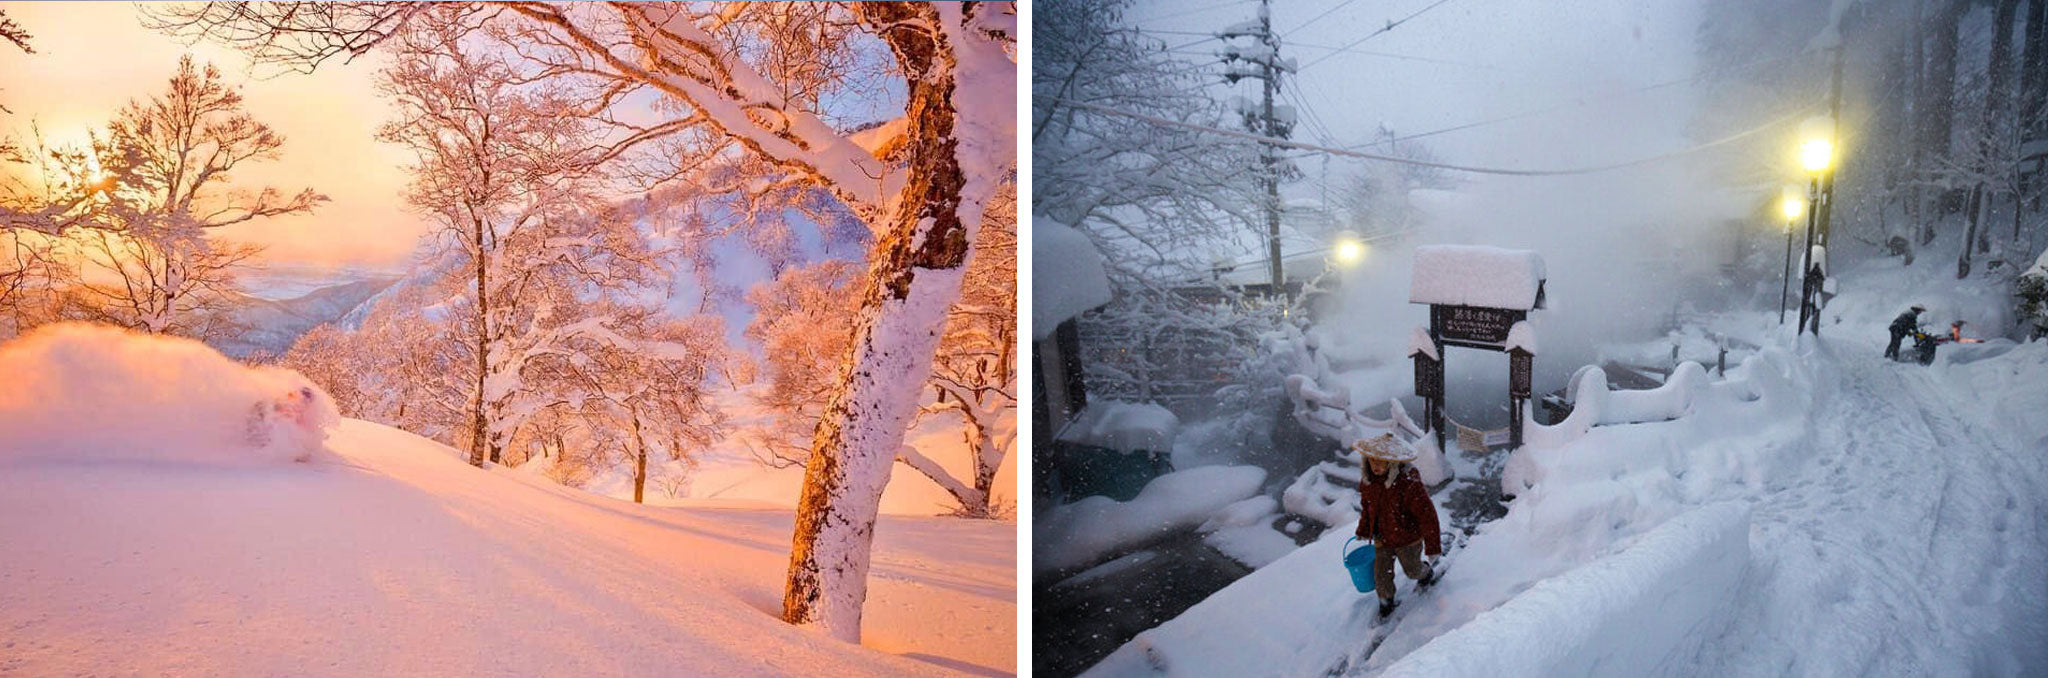 (L) Drew Jolowicz and pure magic near Nozawa Onsen. It took us over two years to get this shot in cold, pristine sunset light. (R) Quintessential Nozawa Onsen.